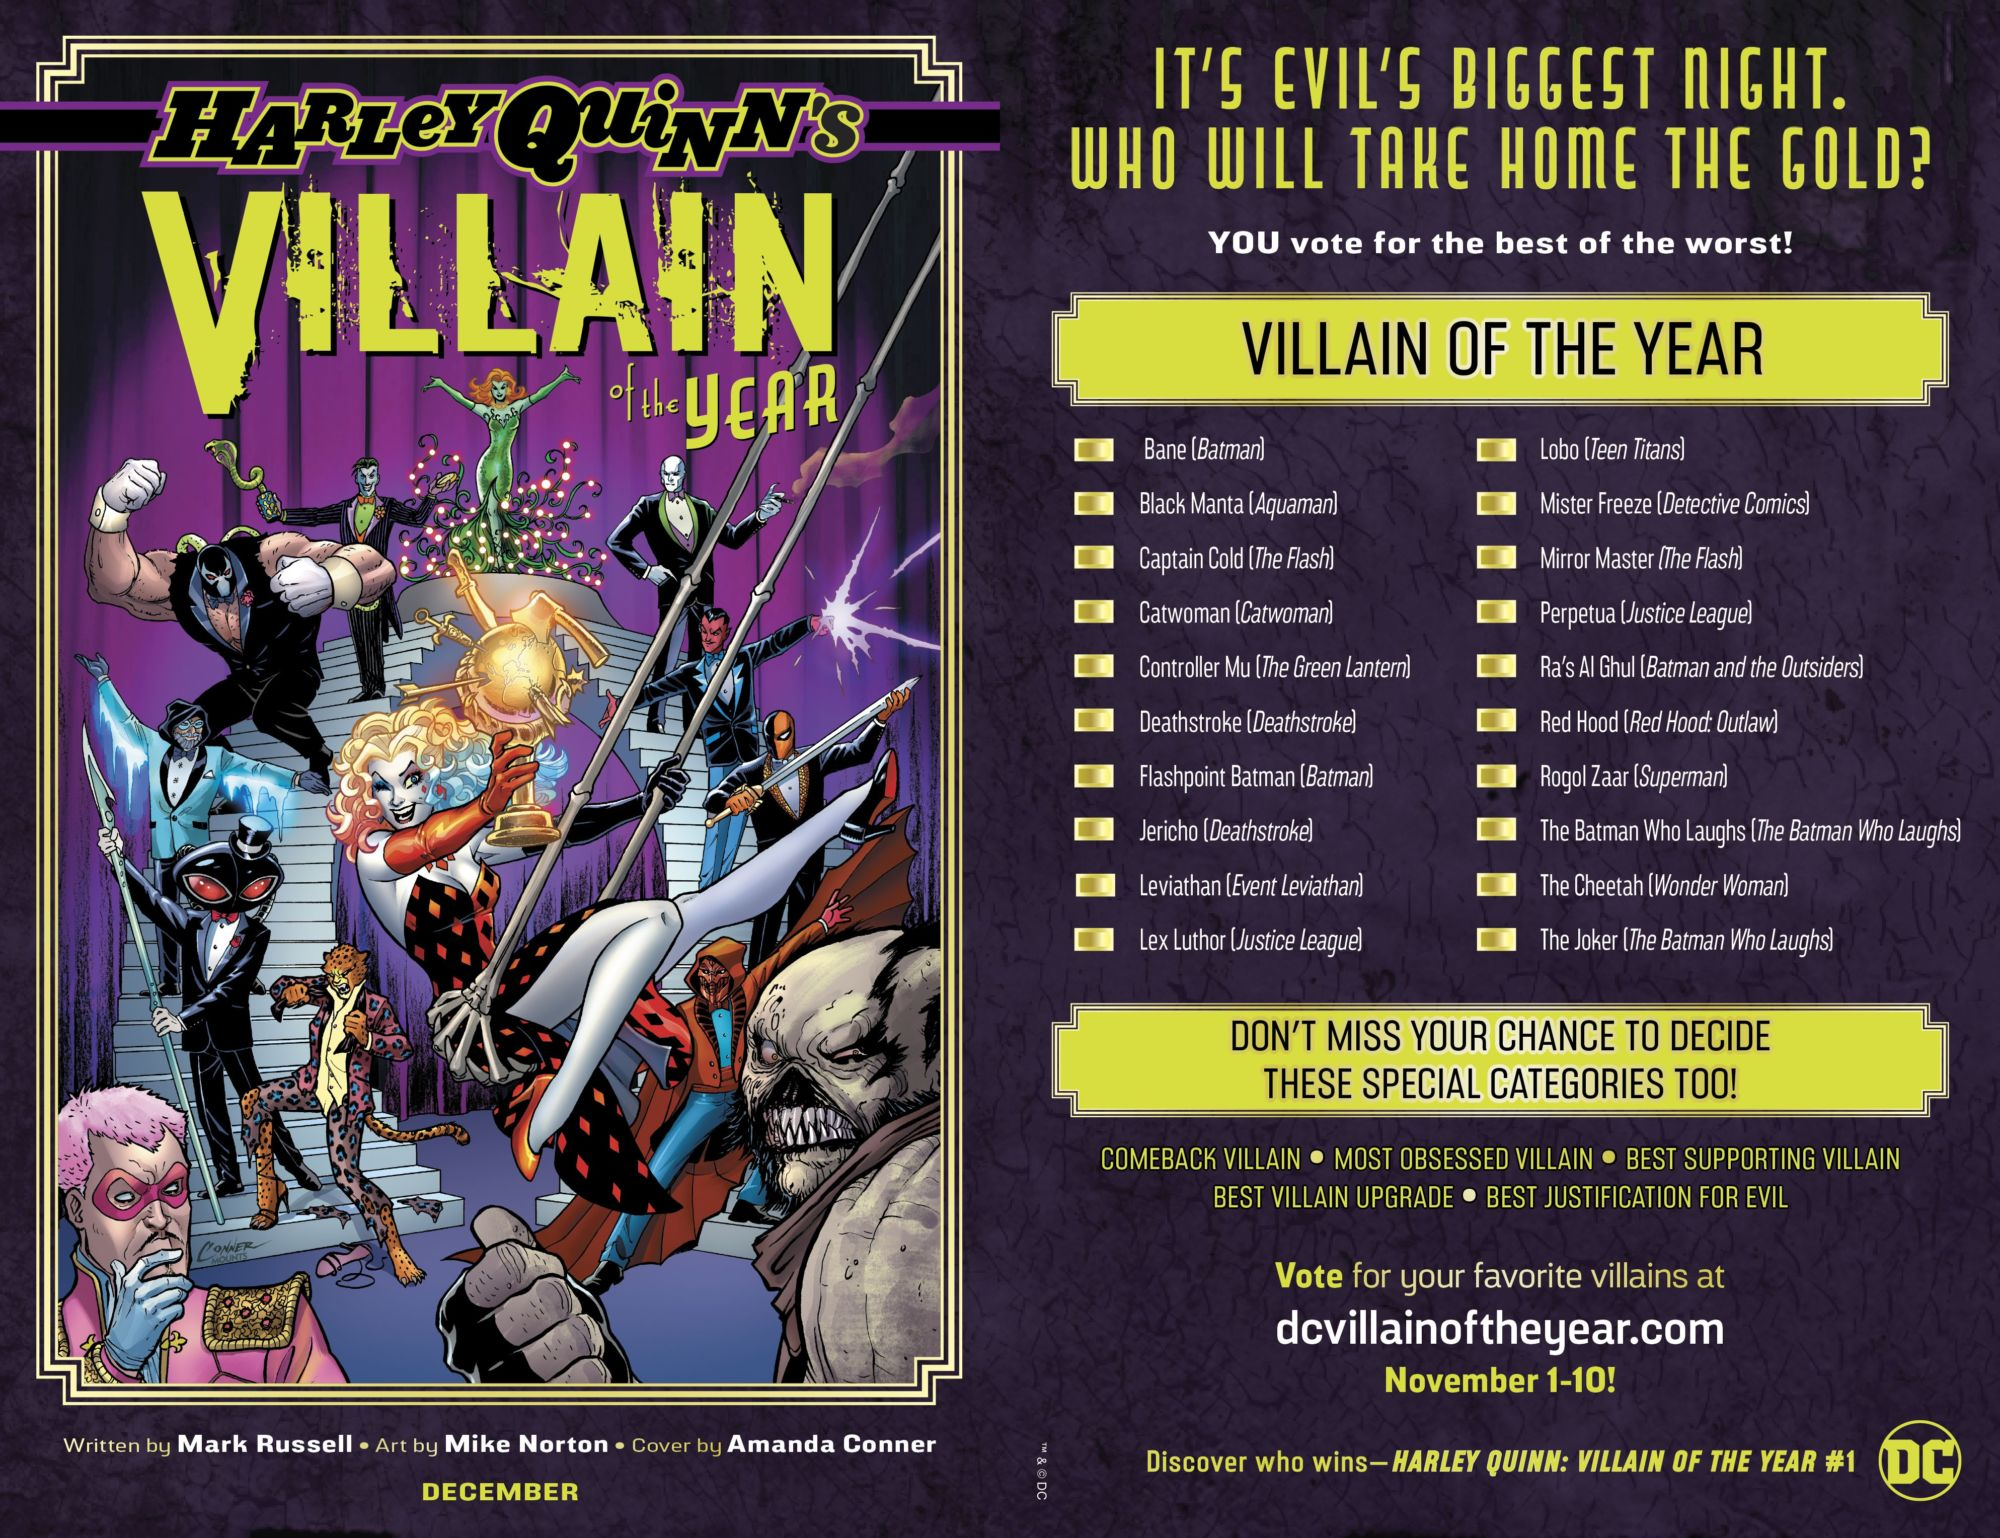 Nominations Revealed in Public Vote For Official DC Villain Of The Year